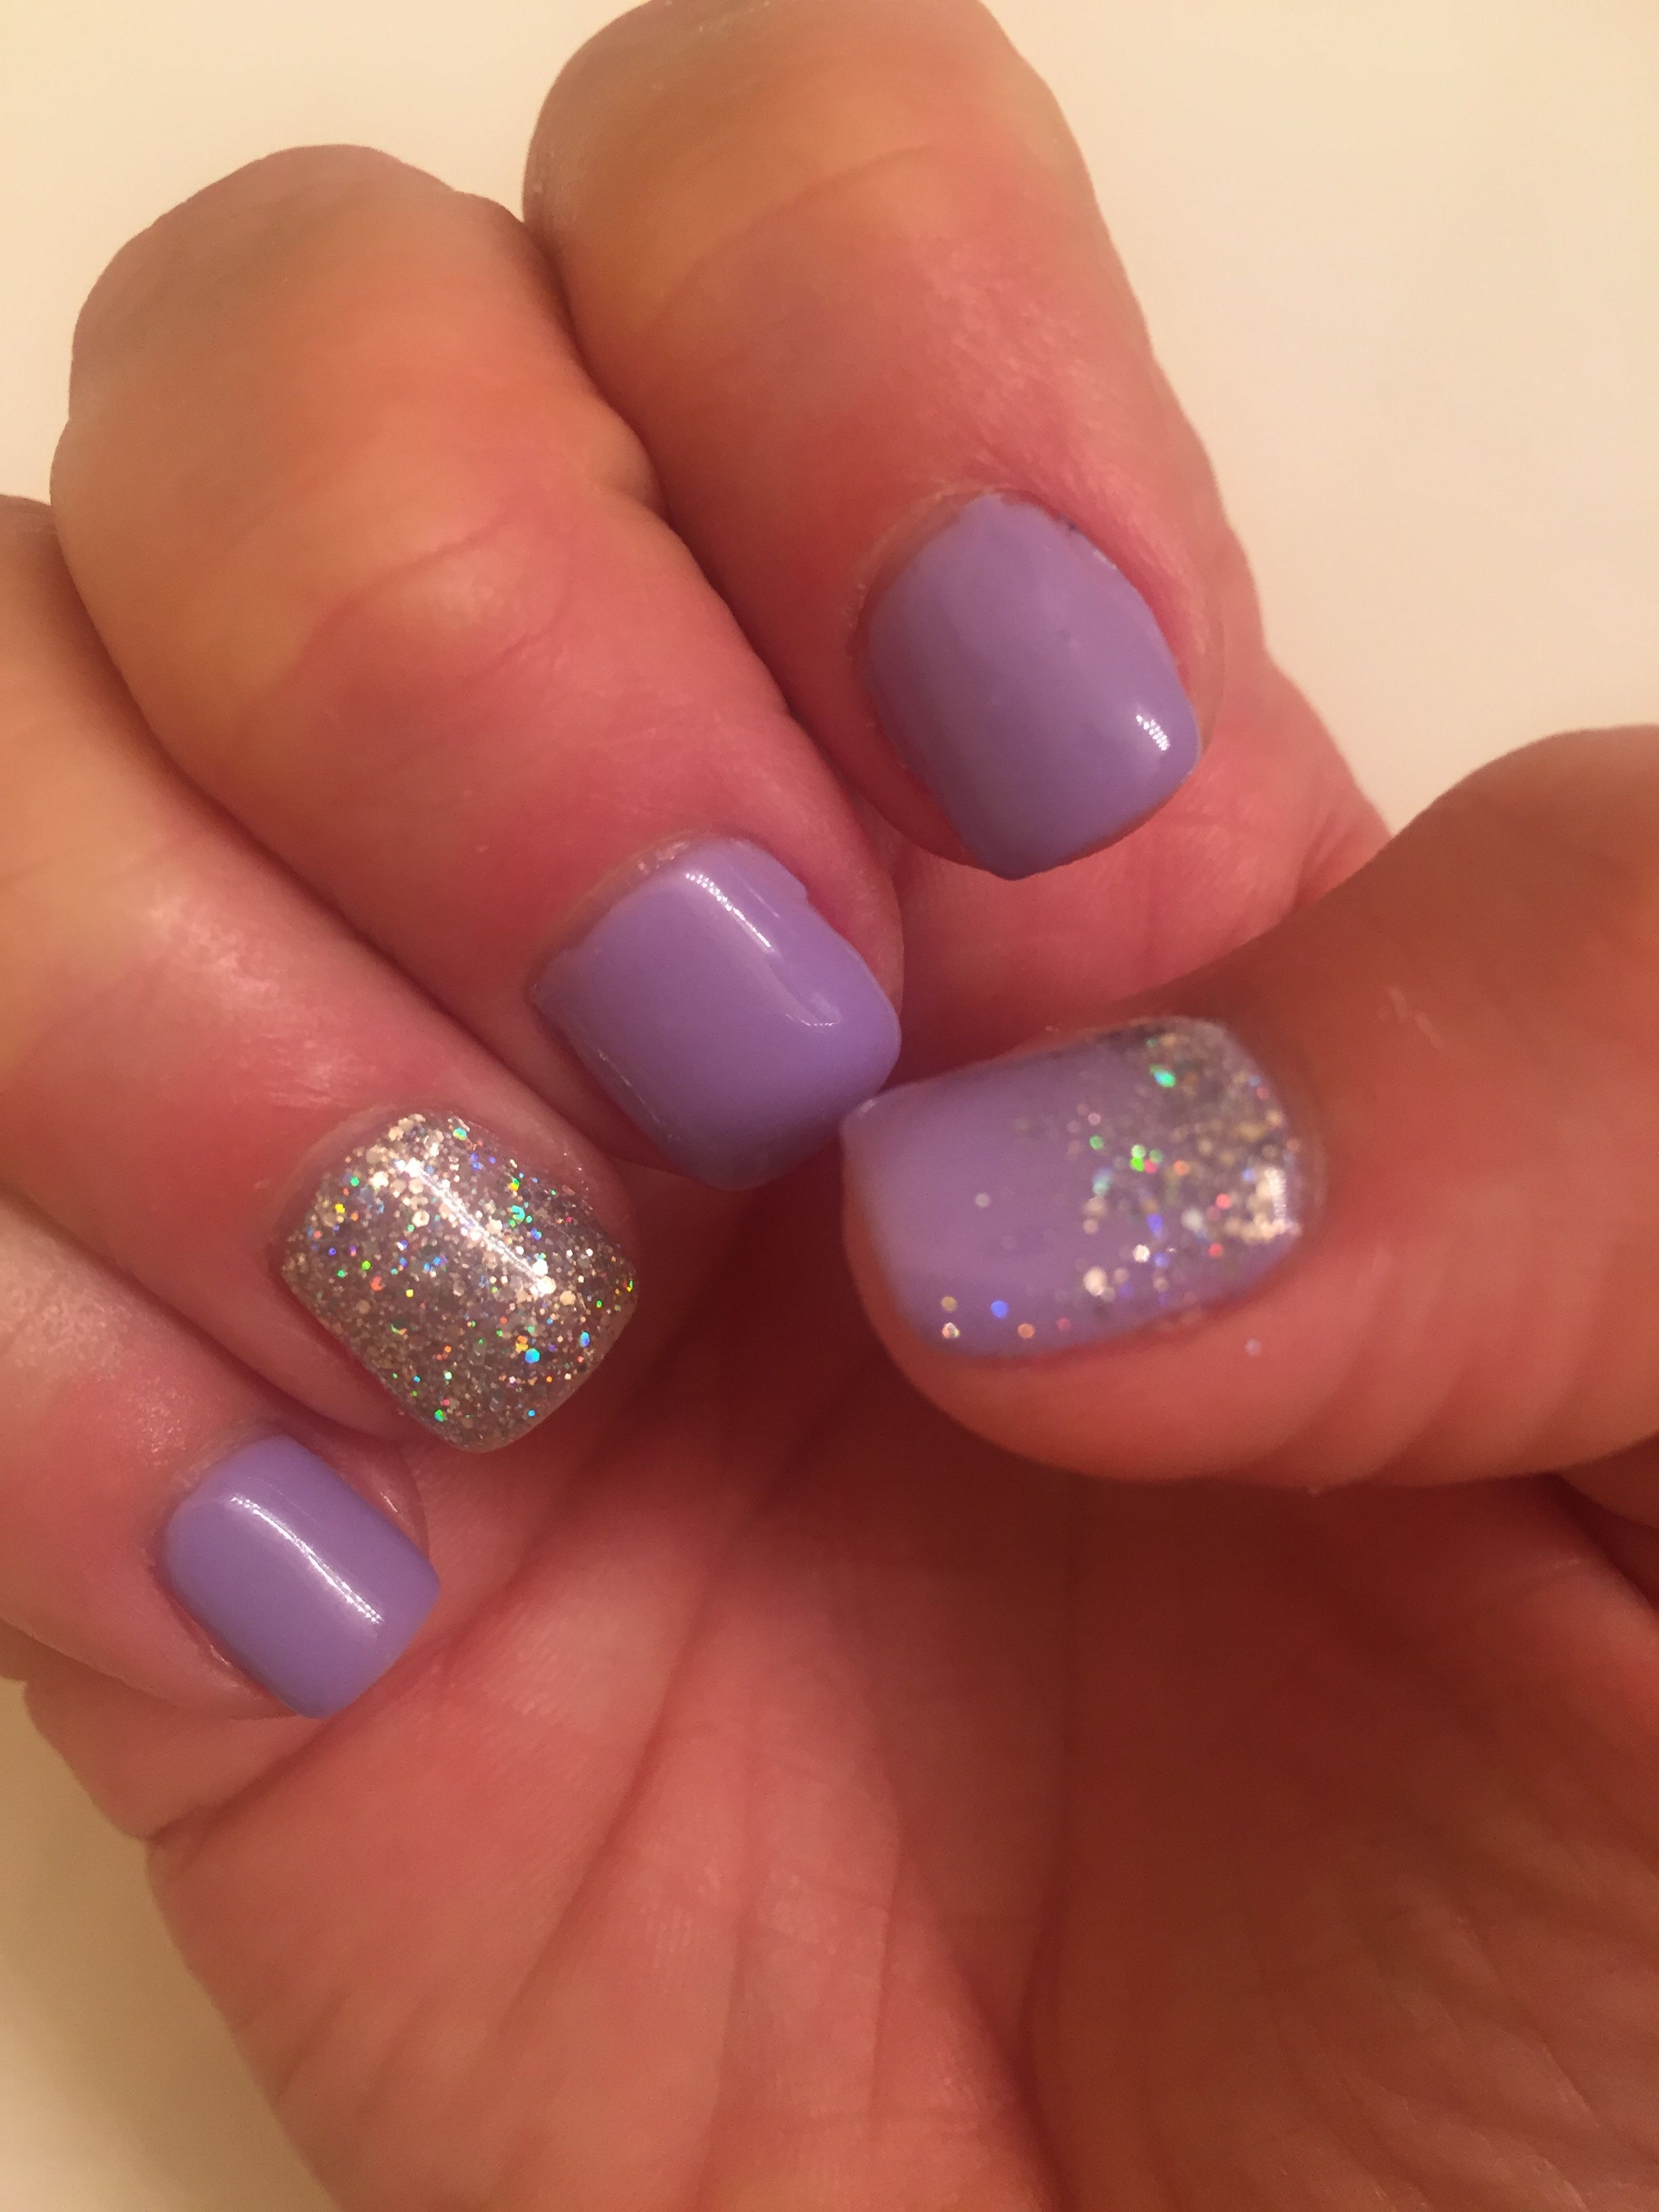 Lavender purple lilac nails mani shellac gel | nail | Pinterest ...